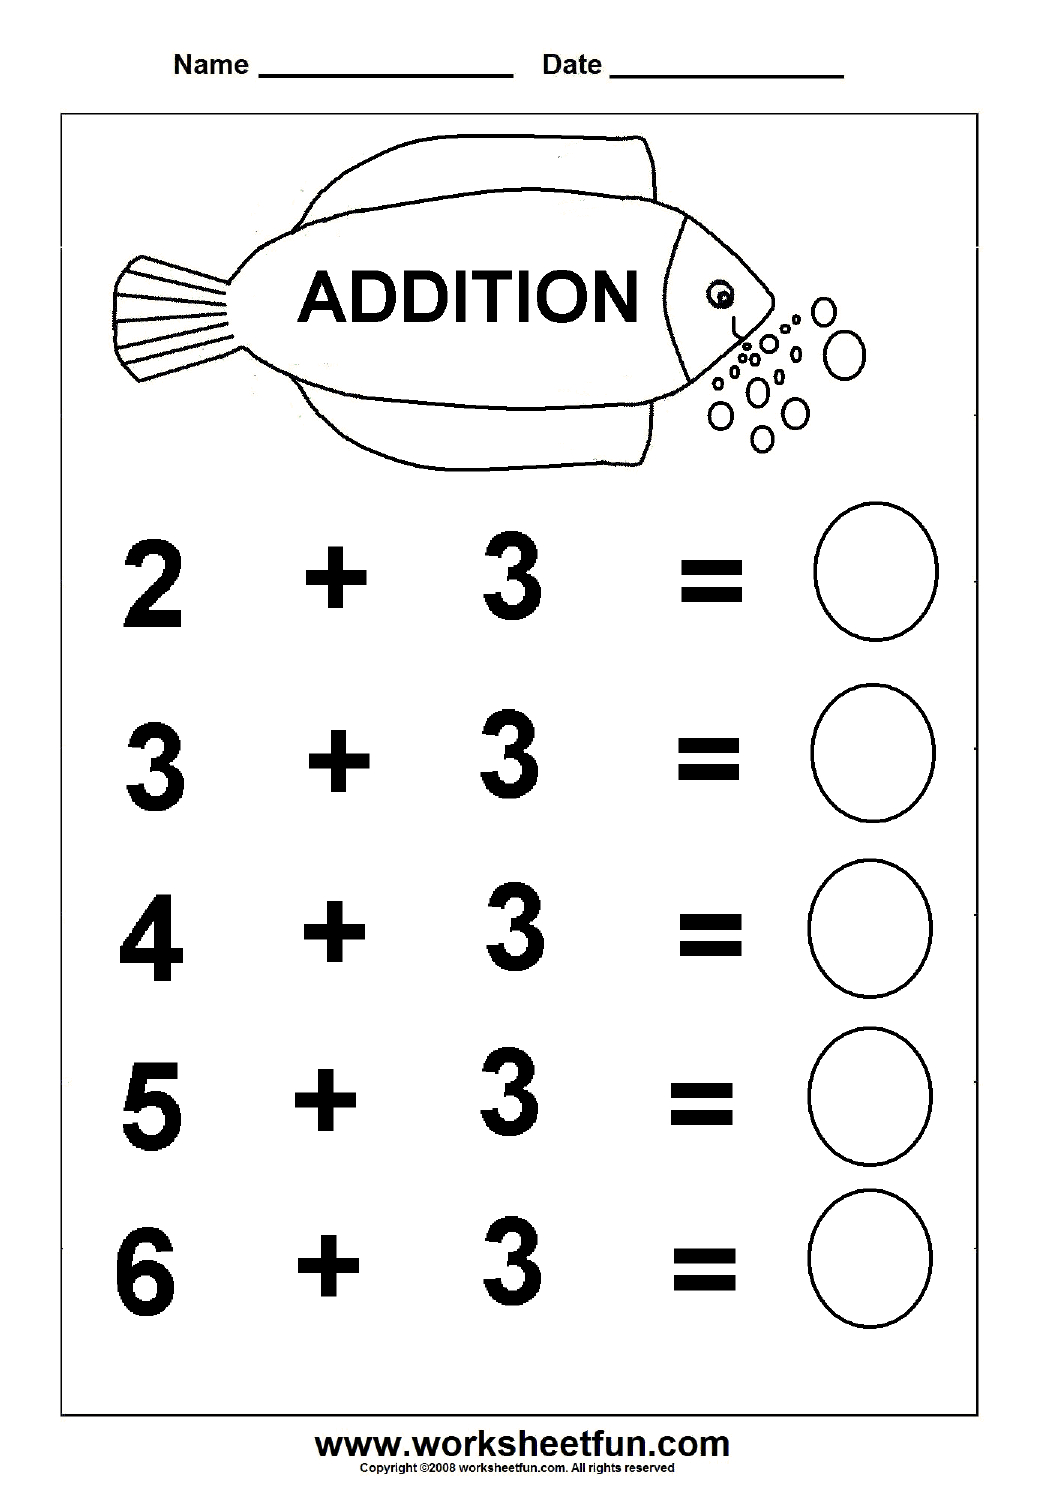 Beginner Addition – 6 Kindergarten Addition Worksheets / Free | Printable Math Worksheets For Toddlers